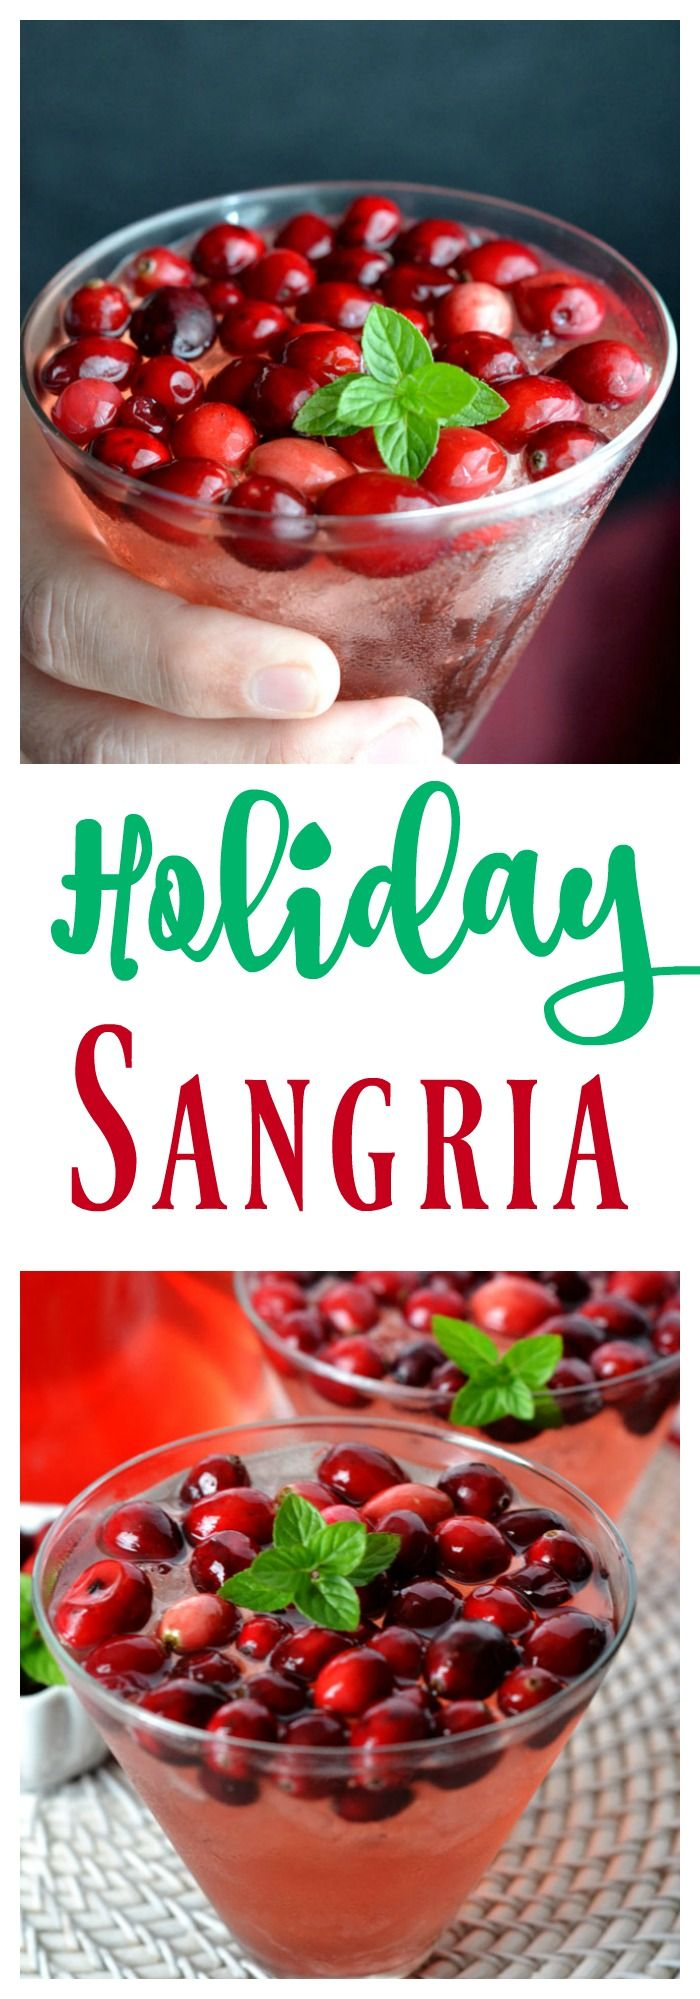 Holiday Sangria perfect for a girls night or party. This festive Sangria contains Prosecco which makes it perfect for Christmas cocktail or New Years Eve.